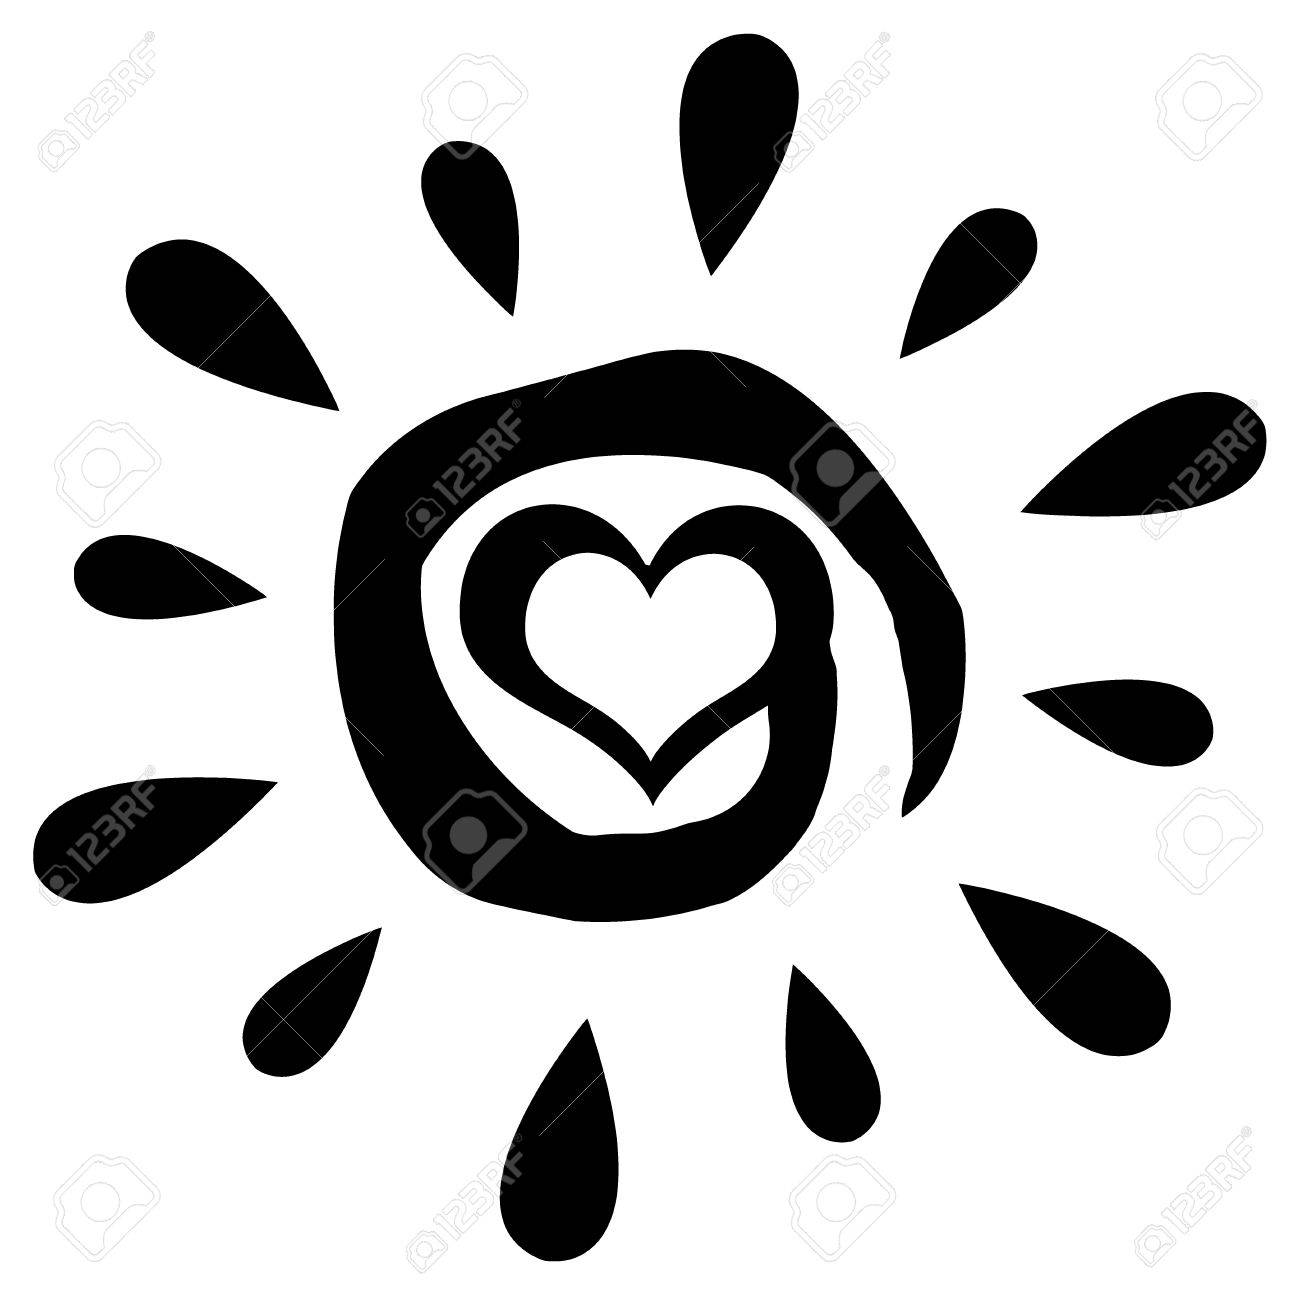 Black Abstract Sun Silhouette With Heart Simple Design Stock Photo